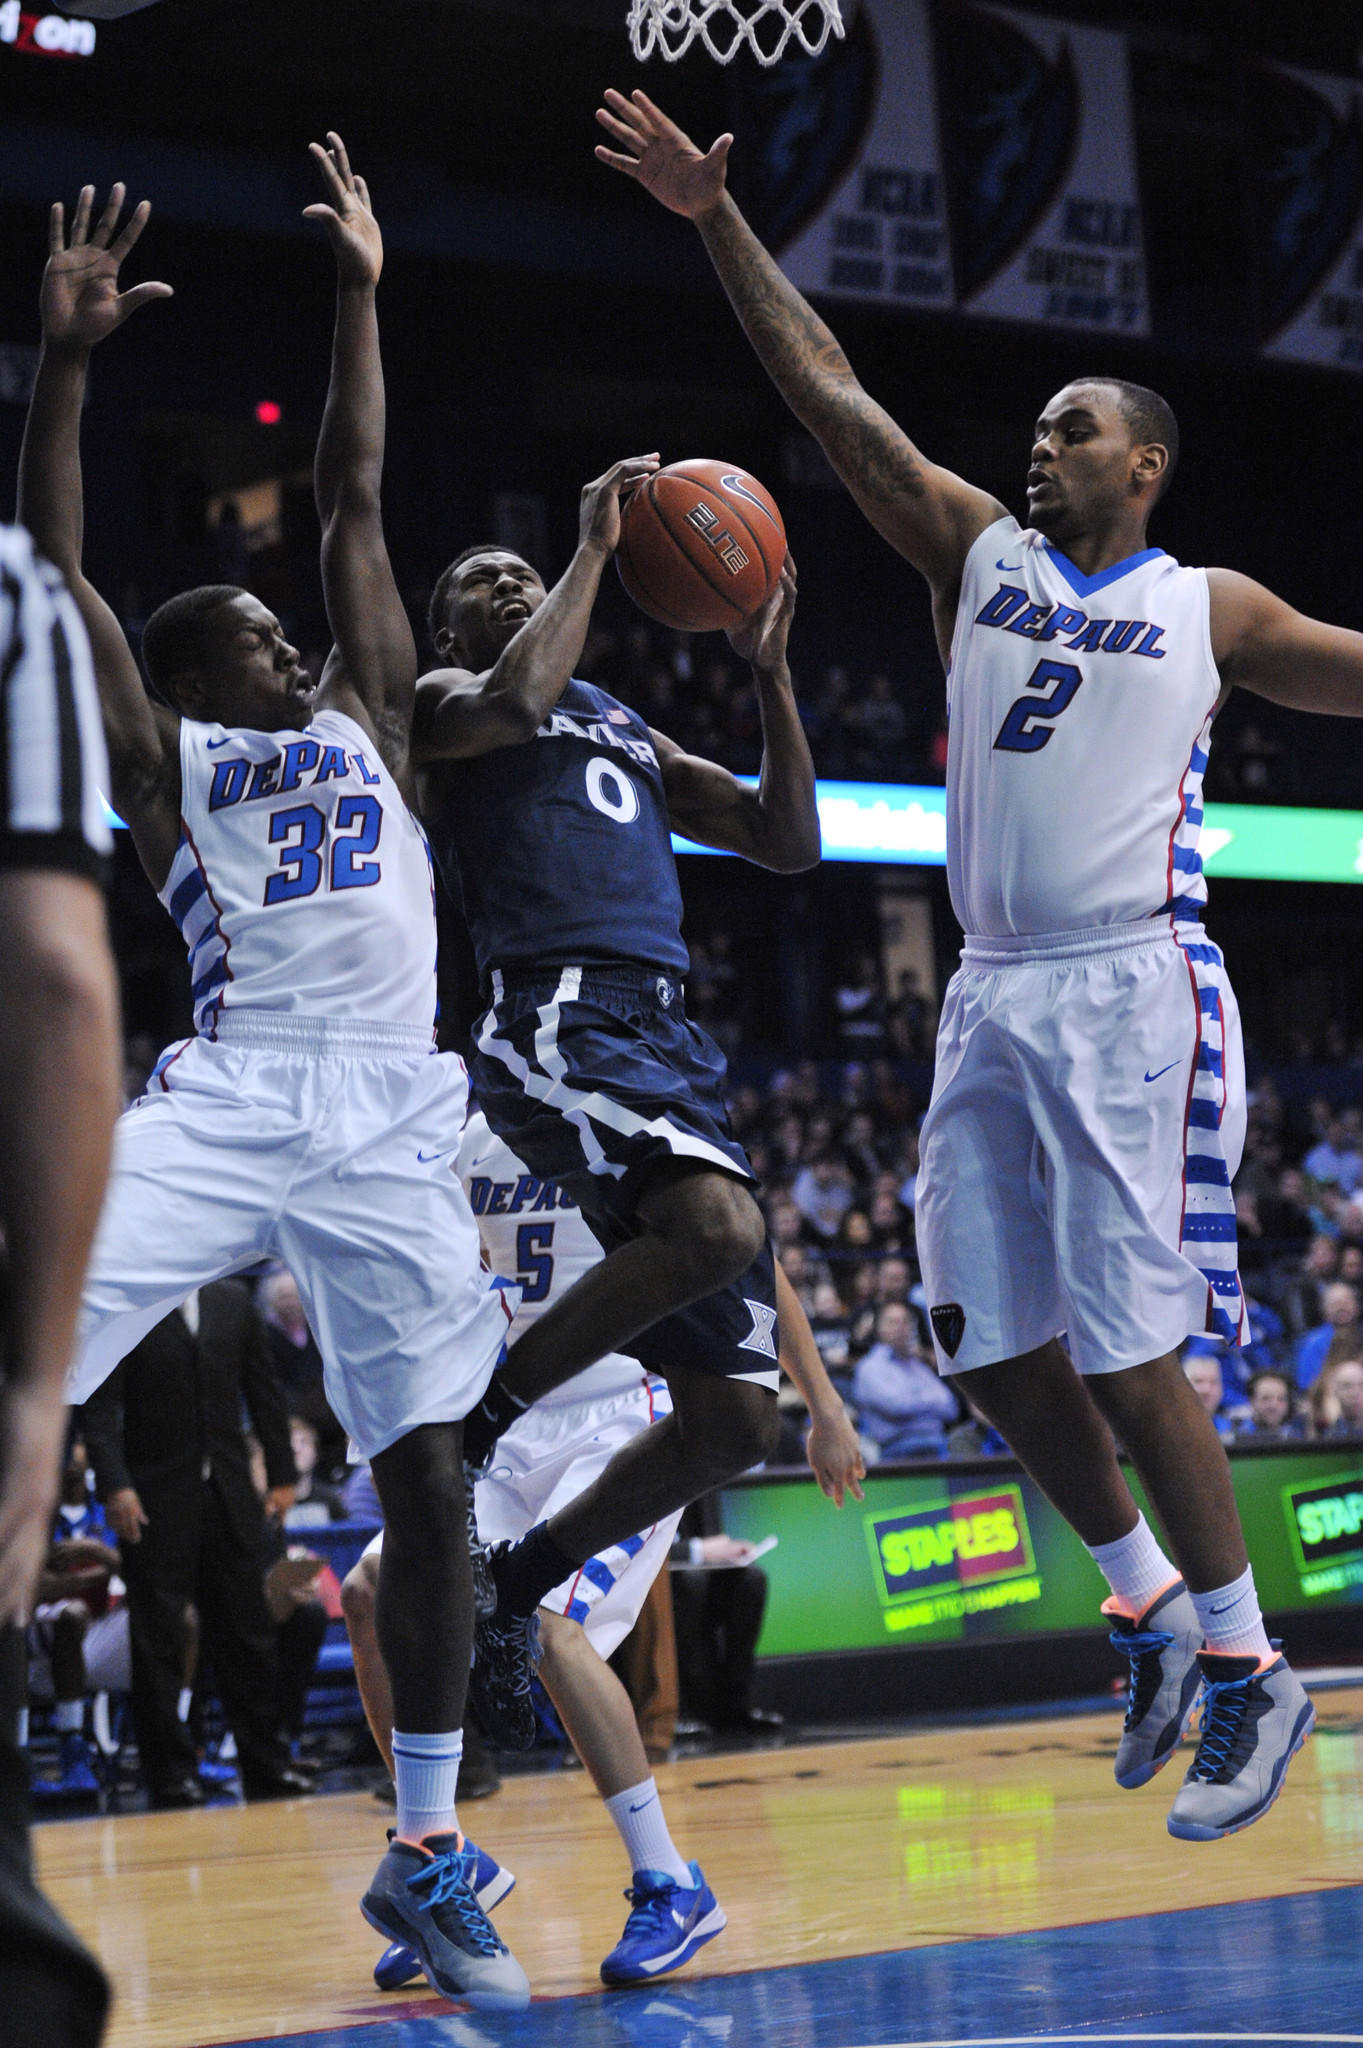 Xavier Musketeers guard Semaj Christon (0) goes to the basket against DePaul Blue Demons center Tommy Hamilton IV (2) and guard Charles McKinney (32).